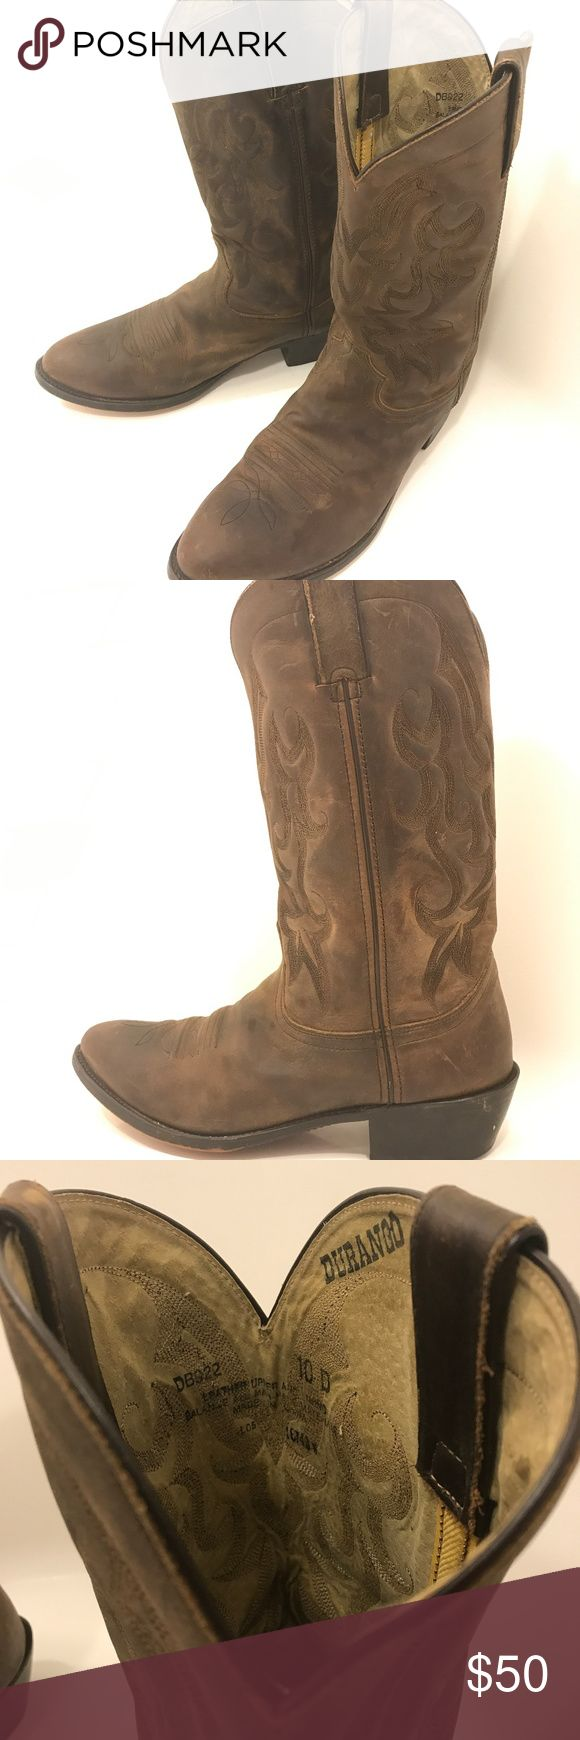 """Durango Men's Cowboy Boots Brown Leather Size 10 D Durango Men's Western Cowboy Boots are the perfect finishing touch to that rustic look and for everyday use. The authentic leather shouts """"Quality"""" to all who wear and admire these boots. The pointed toe and embellished outer patterns give these boots a stylish edge to allow you to feel upper class during the toughest of jobs. Size: 10D, Brand: Durango, Materials: Leather upper & man made materials, Color: Brown, Features: Pointed toe…"""